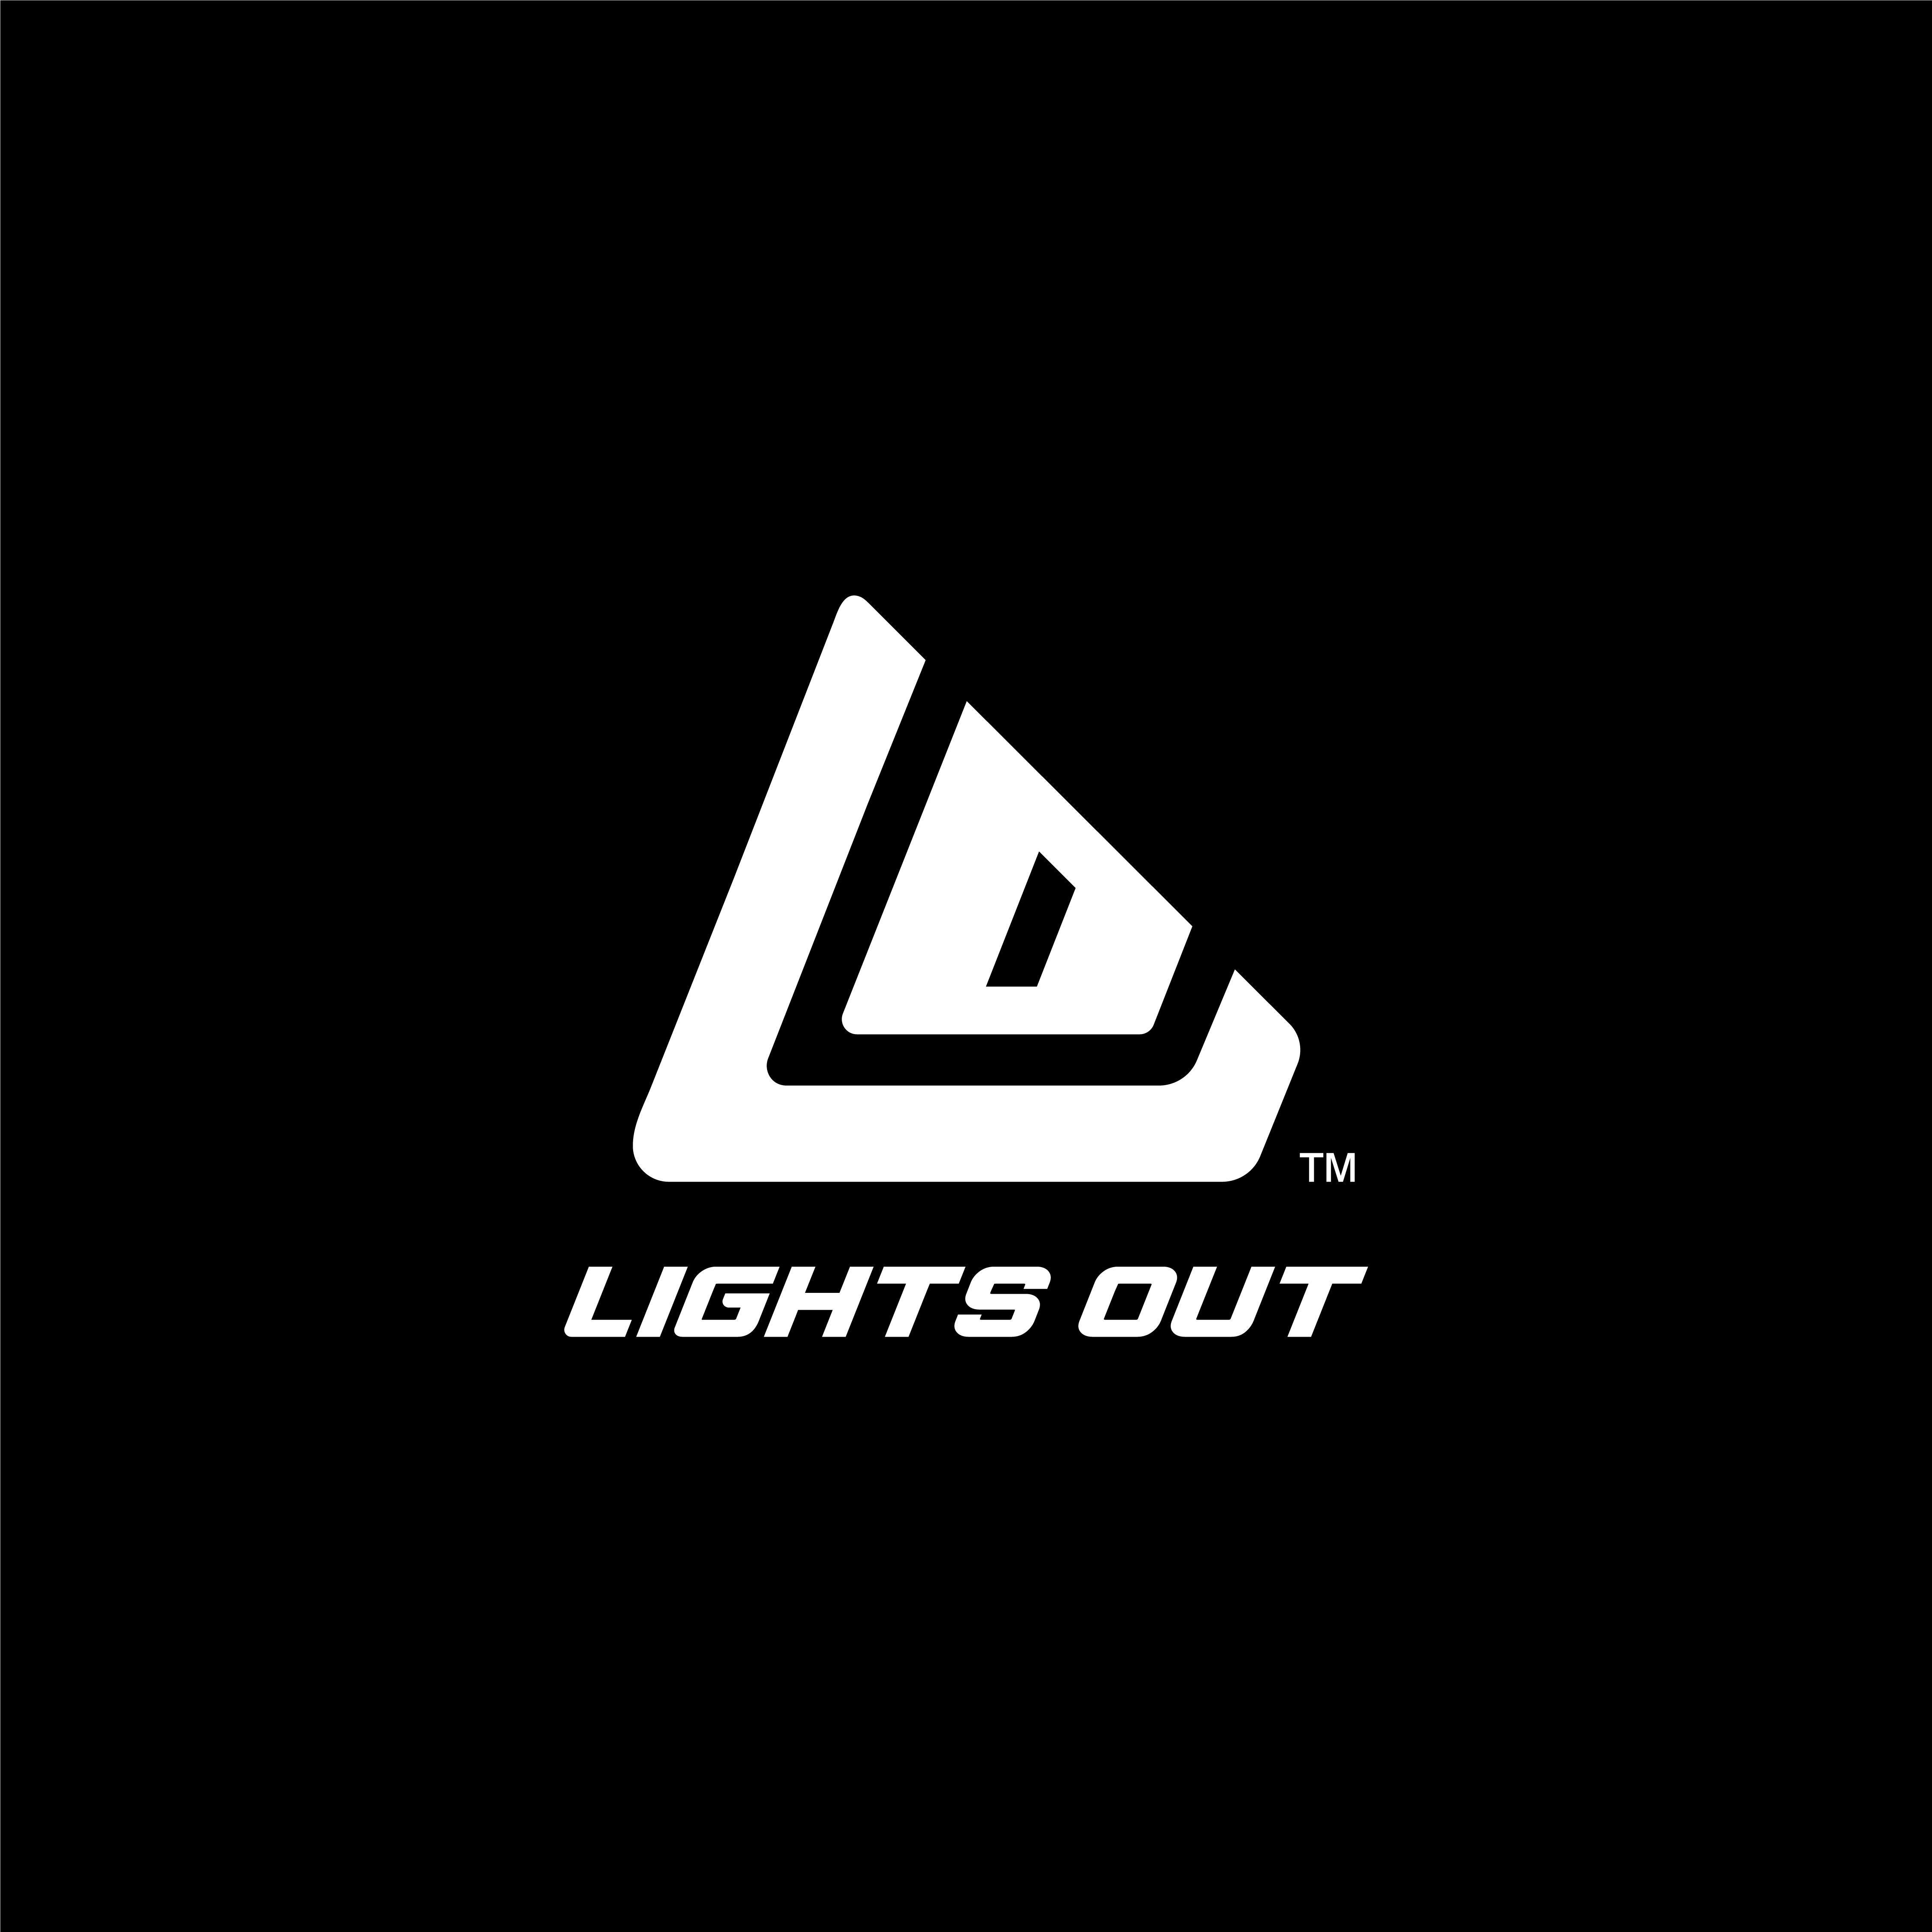 Lights Out Studio Logo